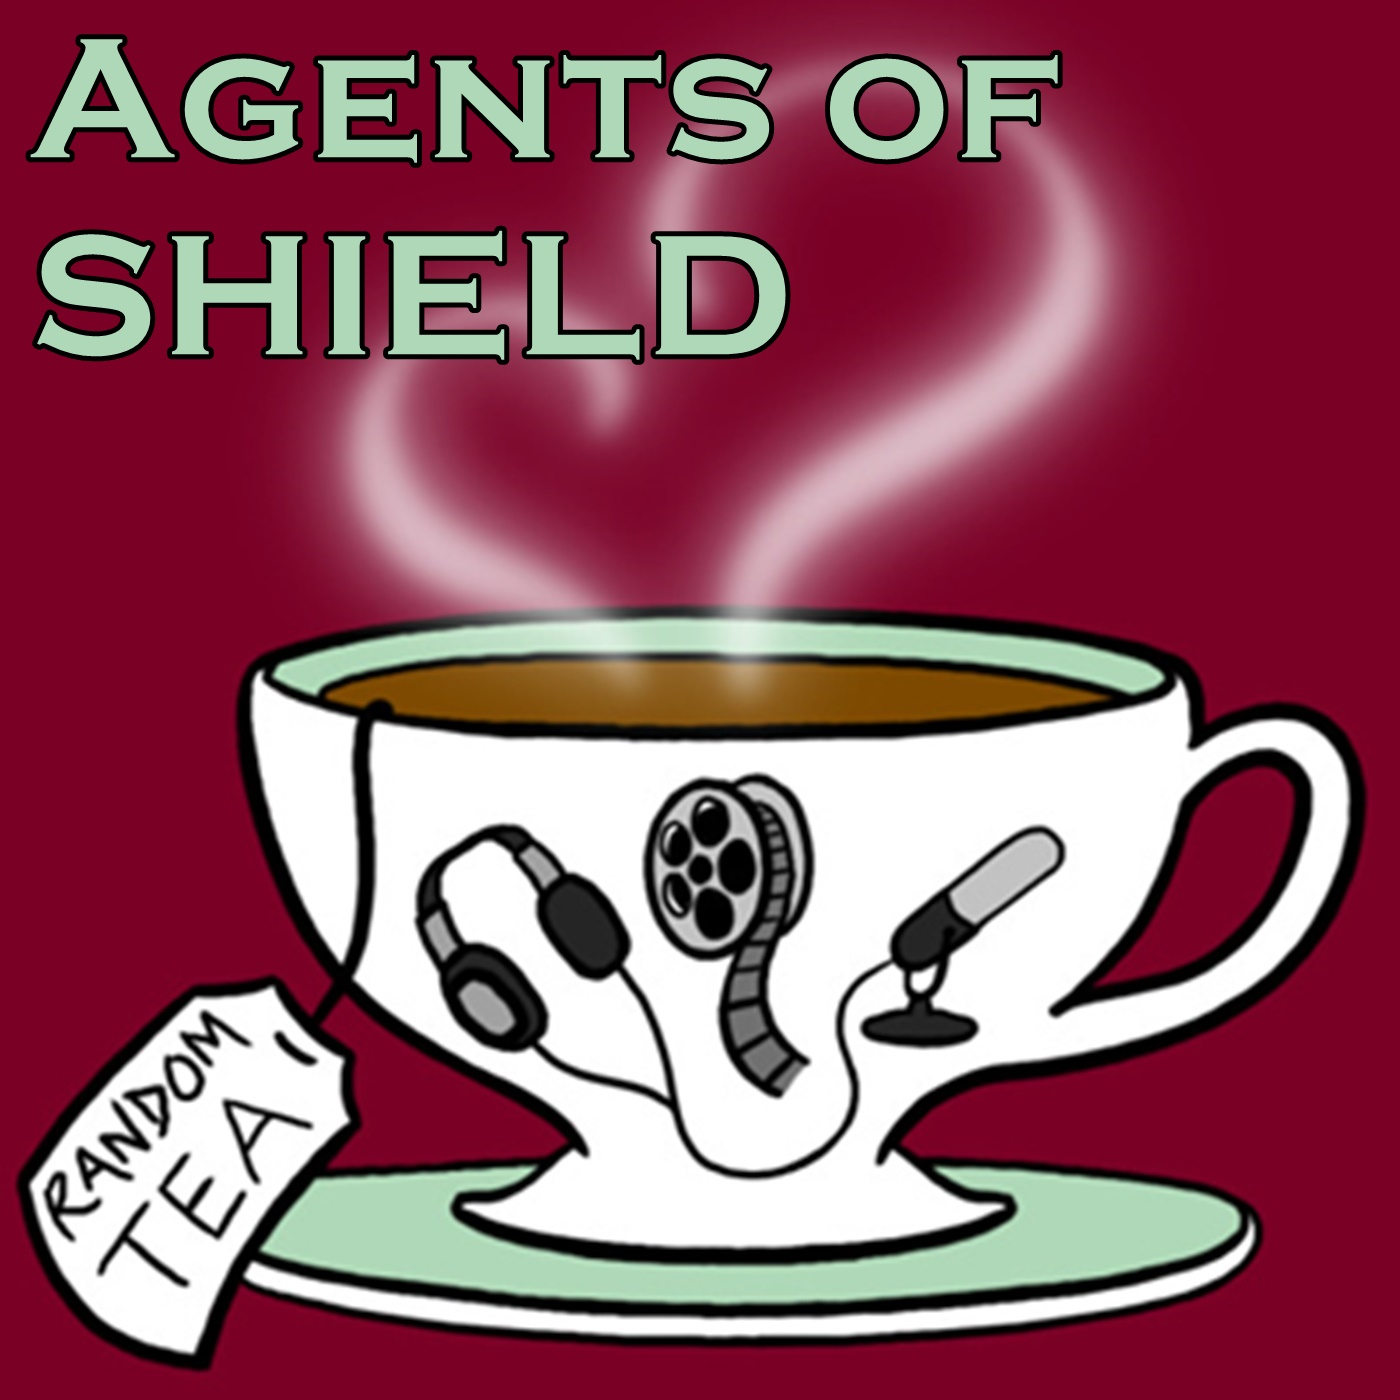 Agents of SHIELD - Random Tea Podcasts